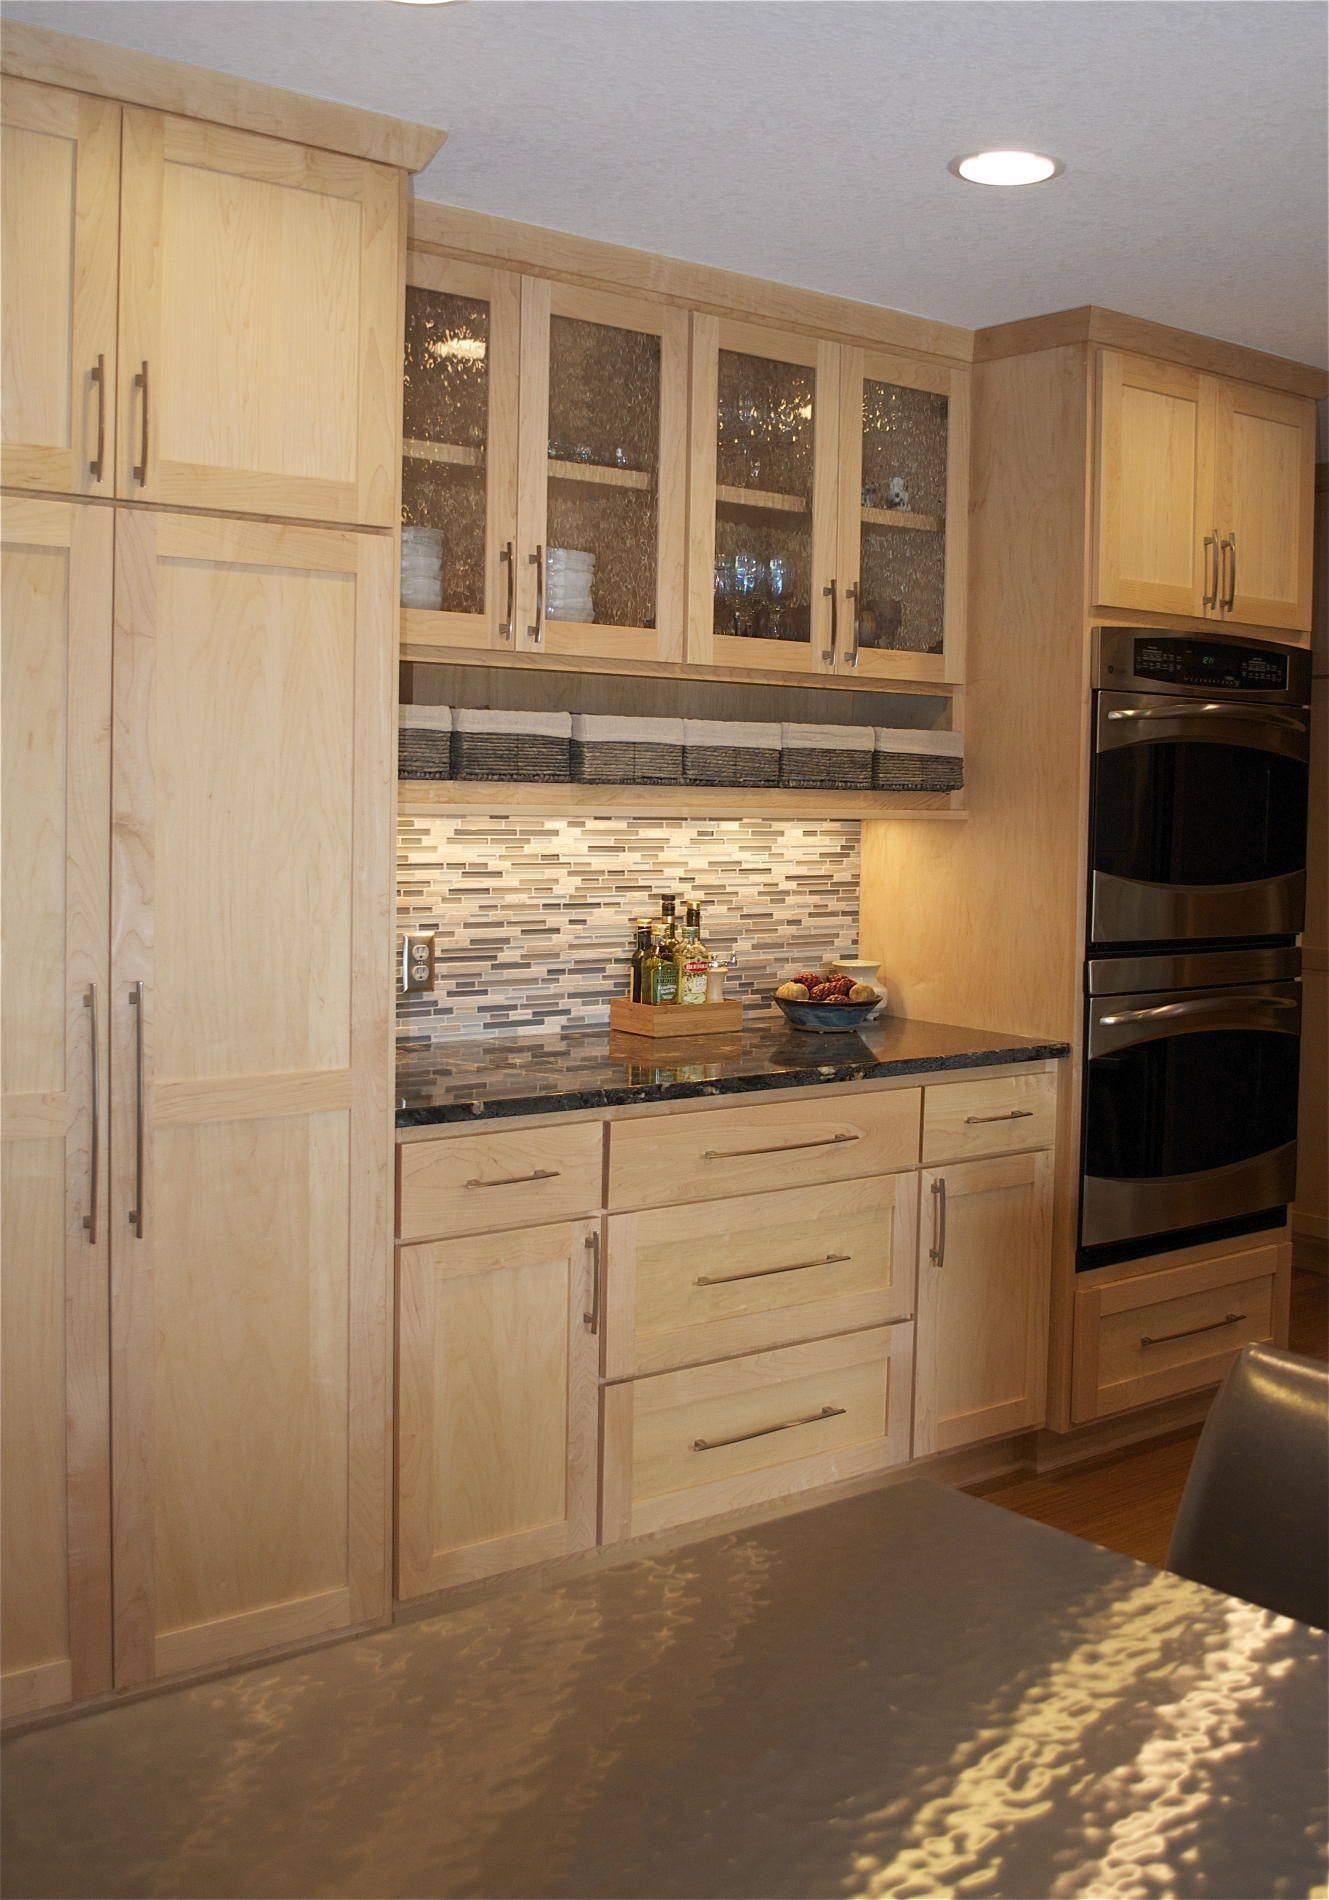 Design In Wood What To Do With Oak Cabinets: Pin On Home Interiors